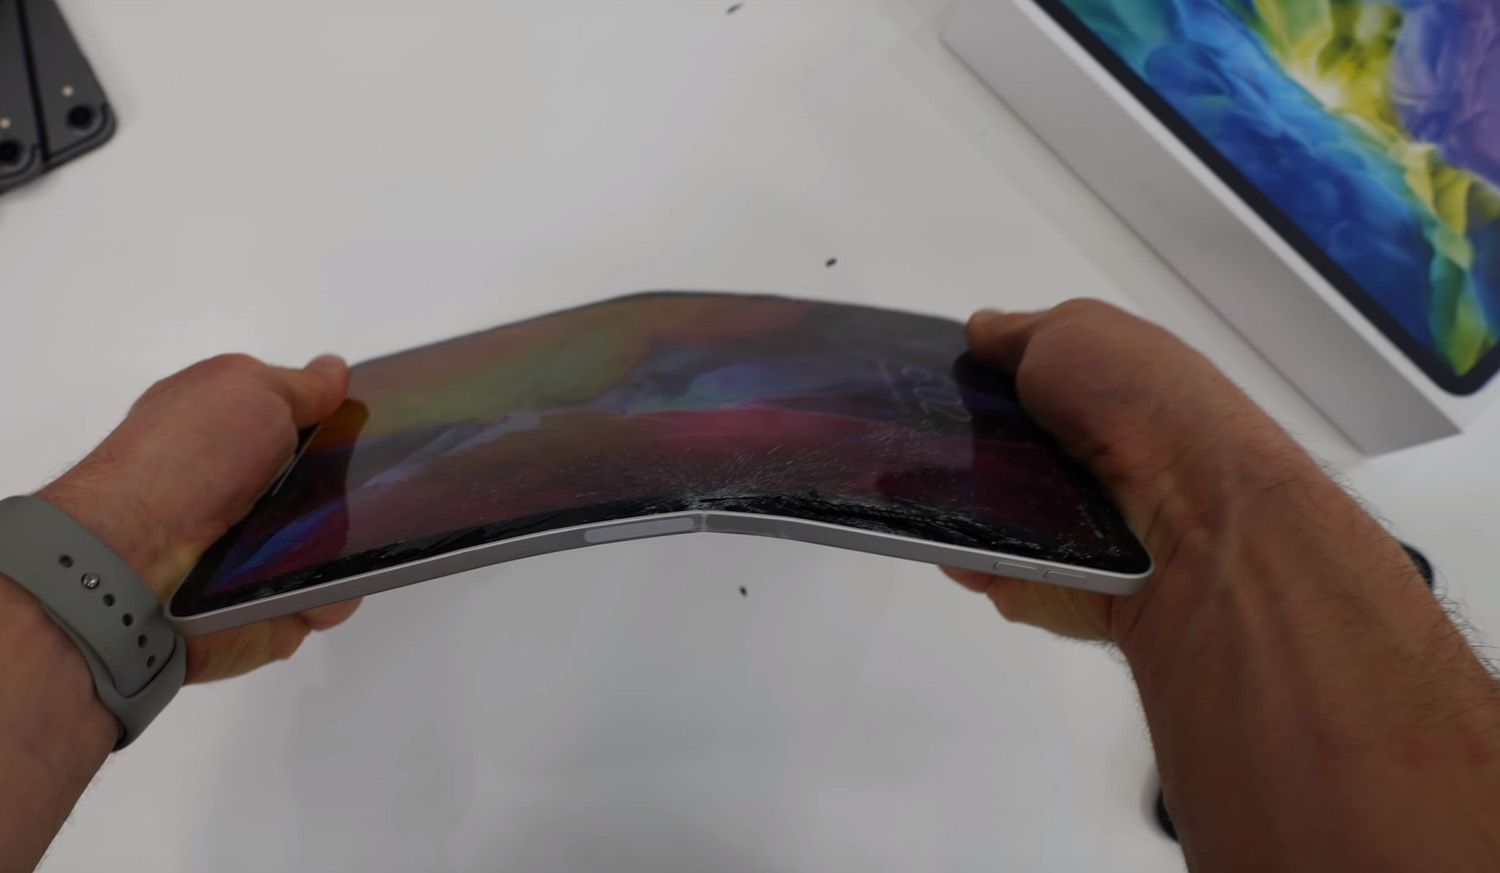 Image of article '2020 iPad Pro Bend Test Shows Apple's New Tablet Is Just as Fragile as Its Predecessor, so Be Careful'